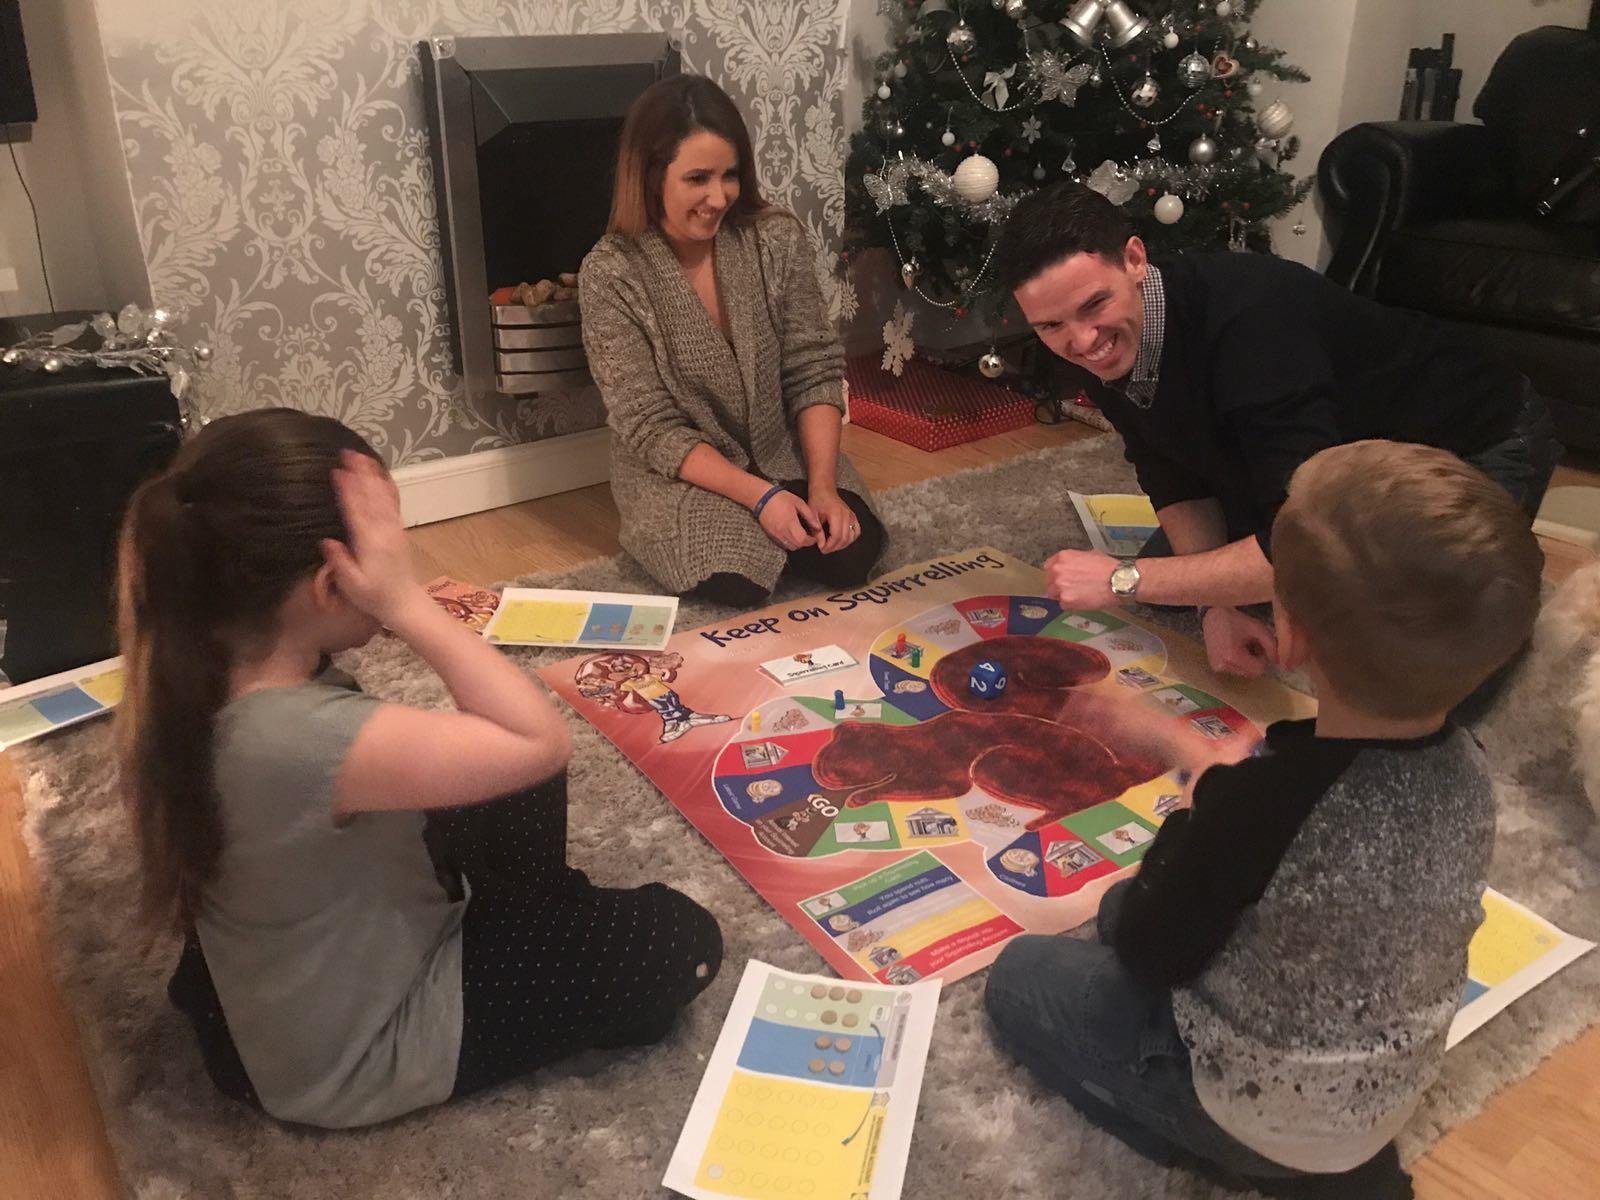 family games night in